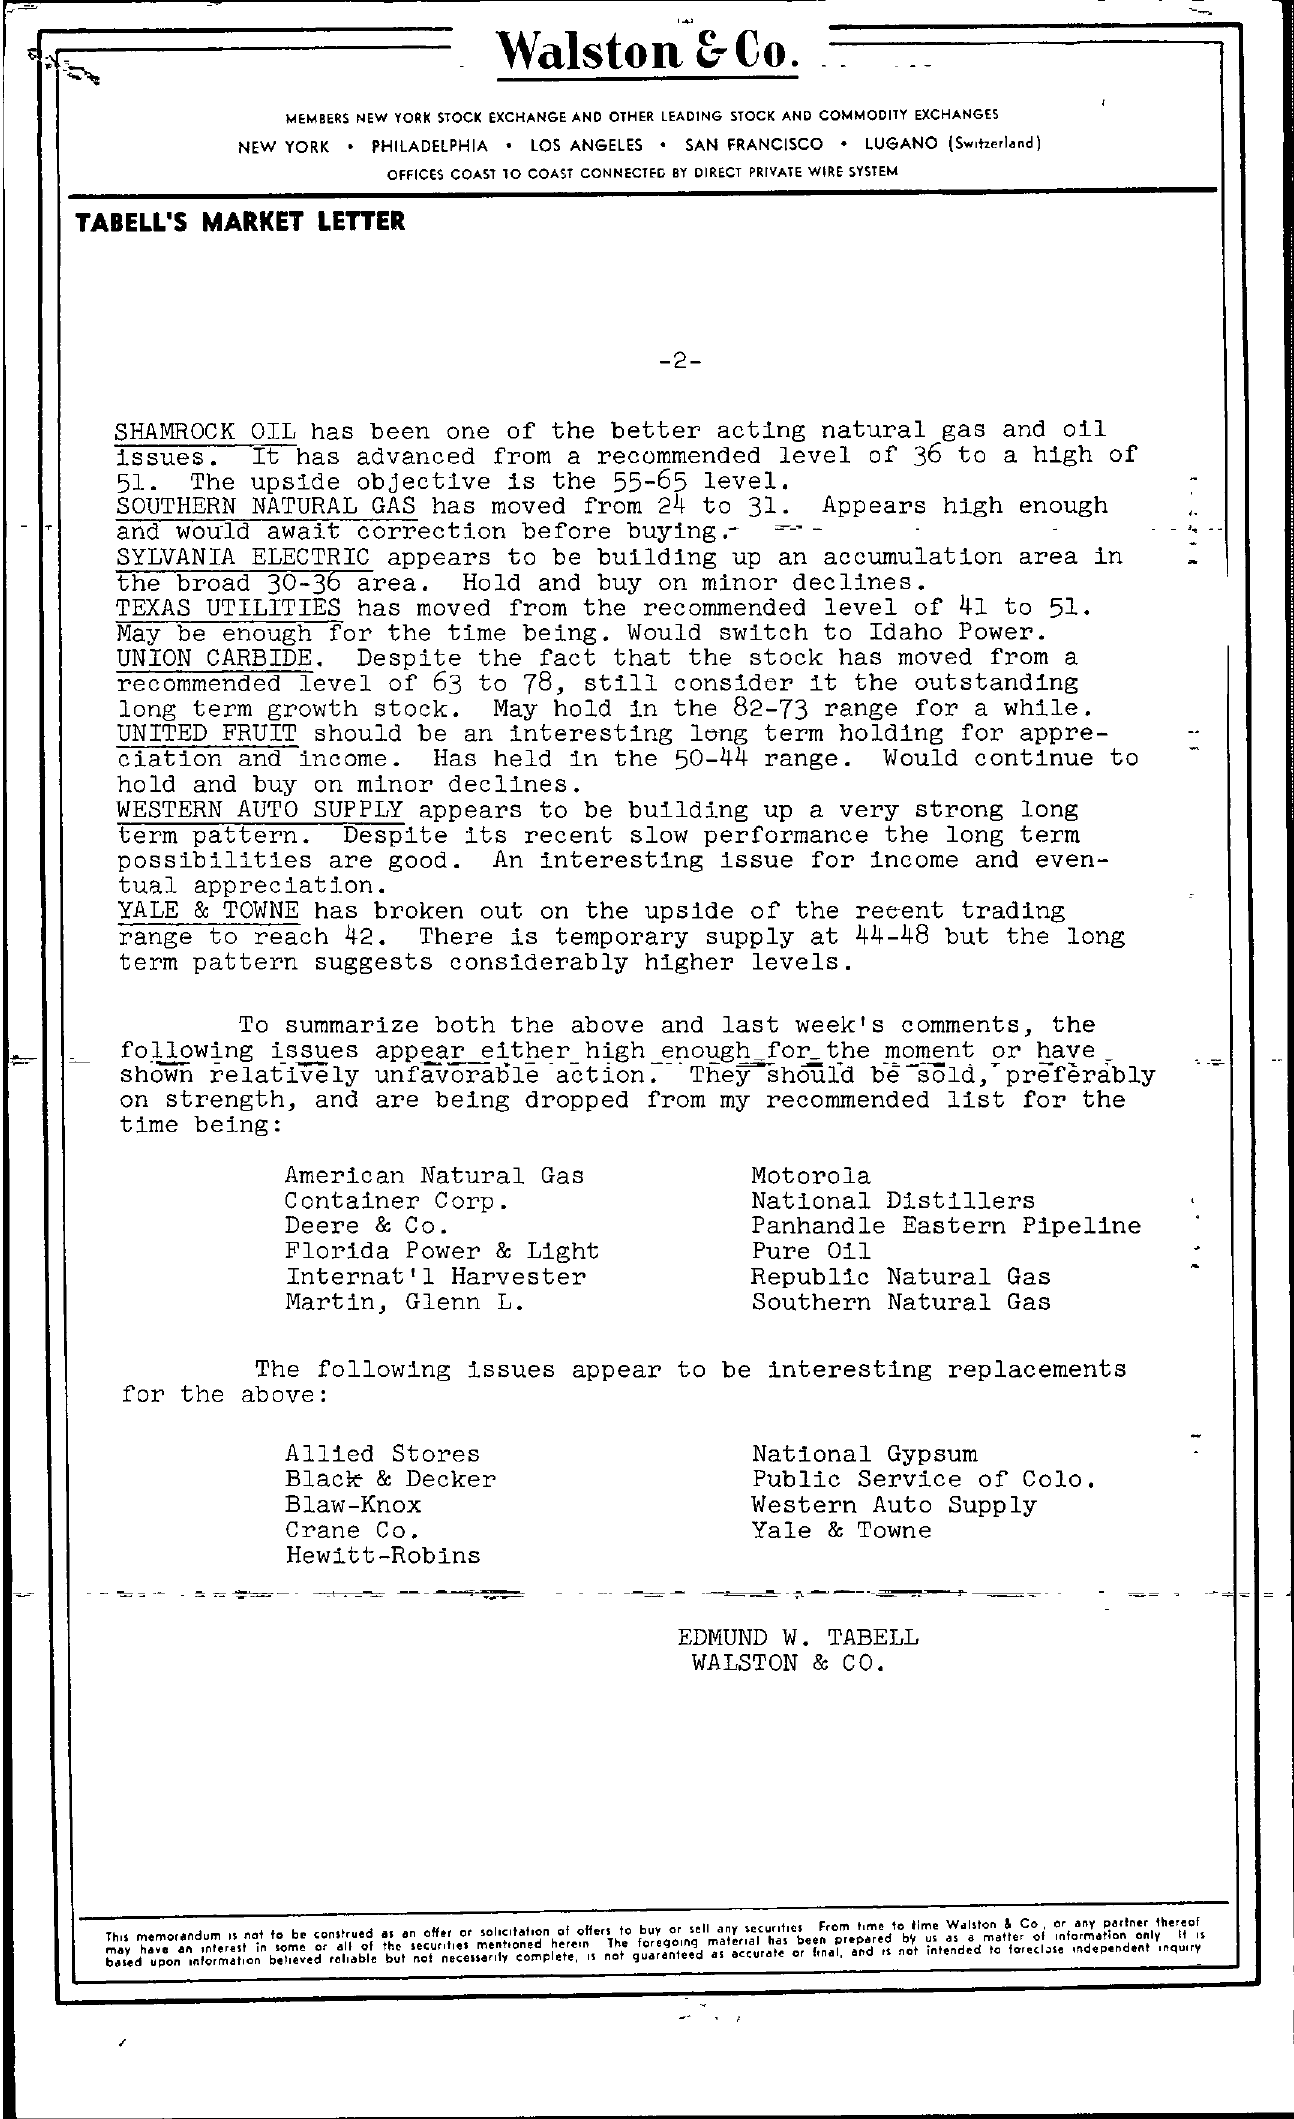 Tabell's Market Letter - April 09, 1954 page 2